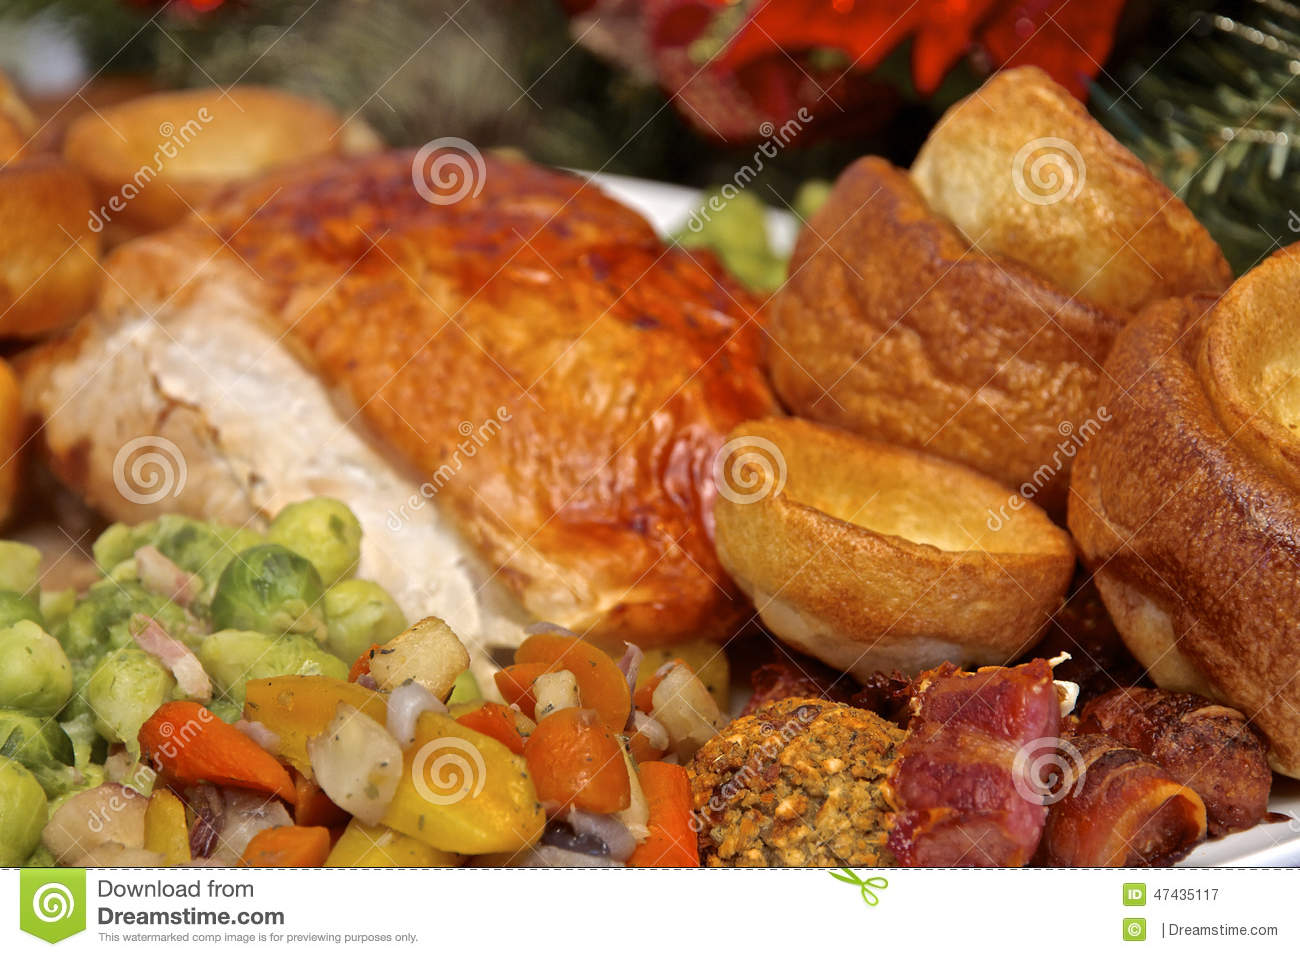 Christmas Turkey Dinner Stock Photo - Image: 47435117